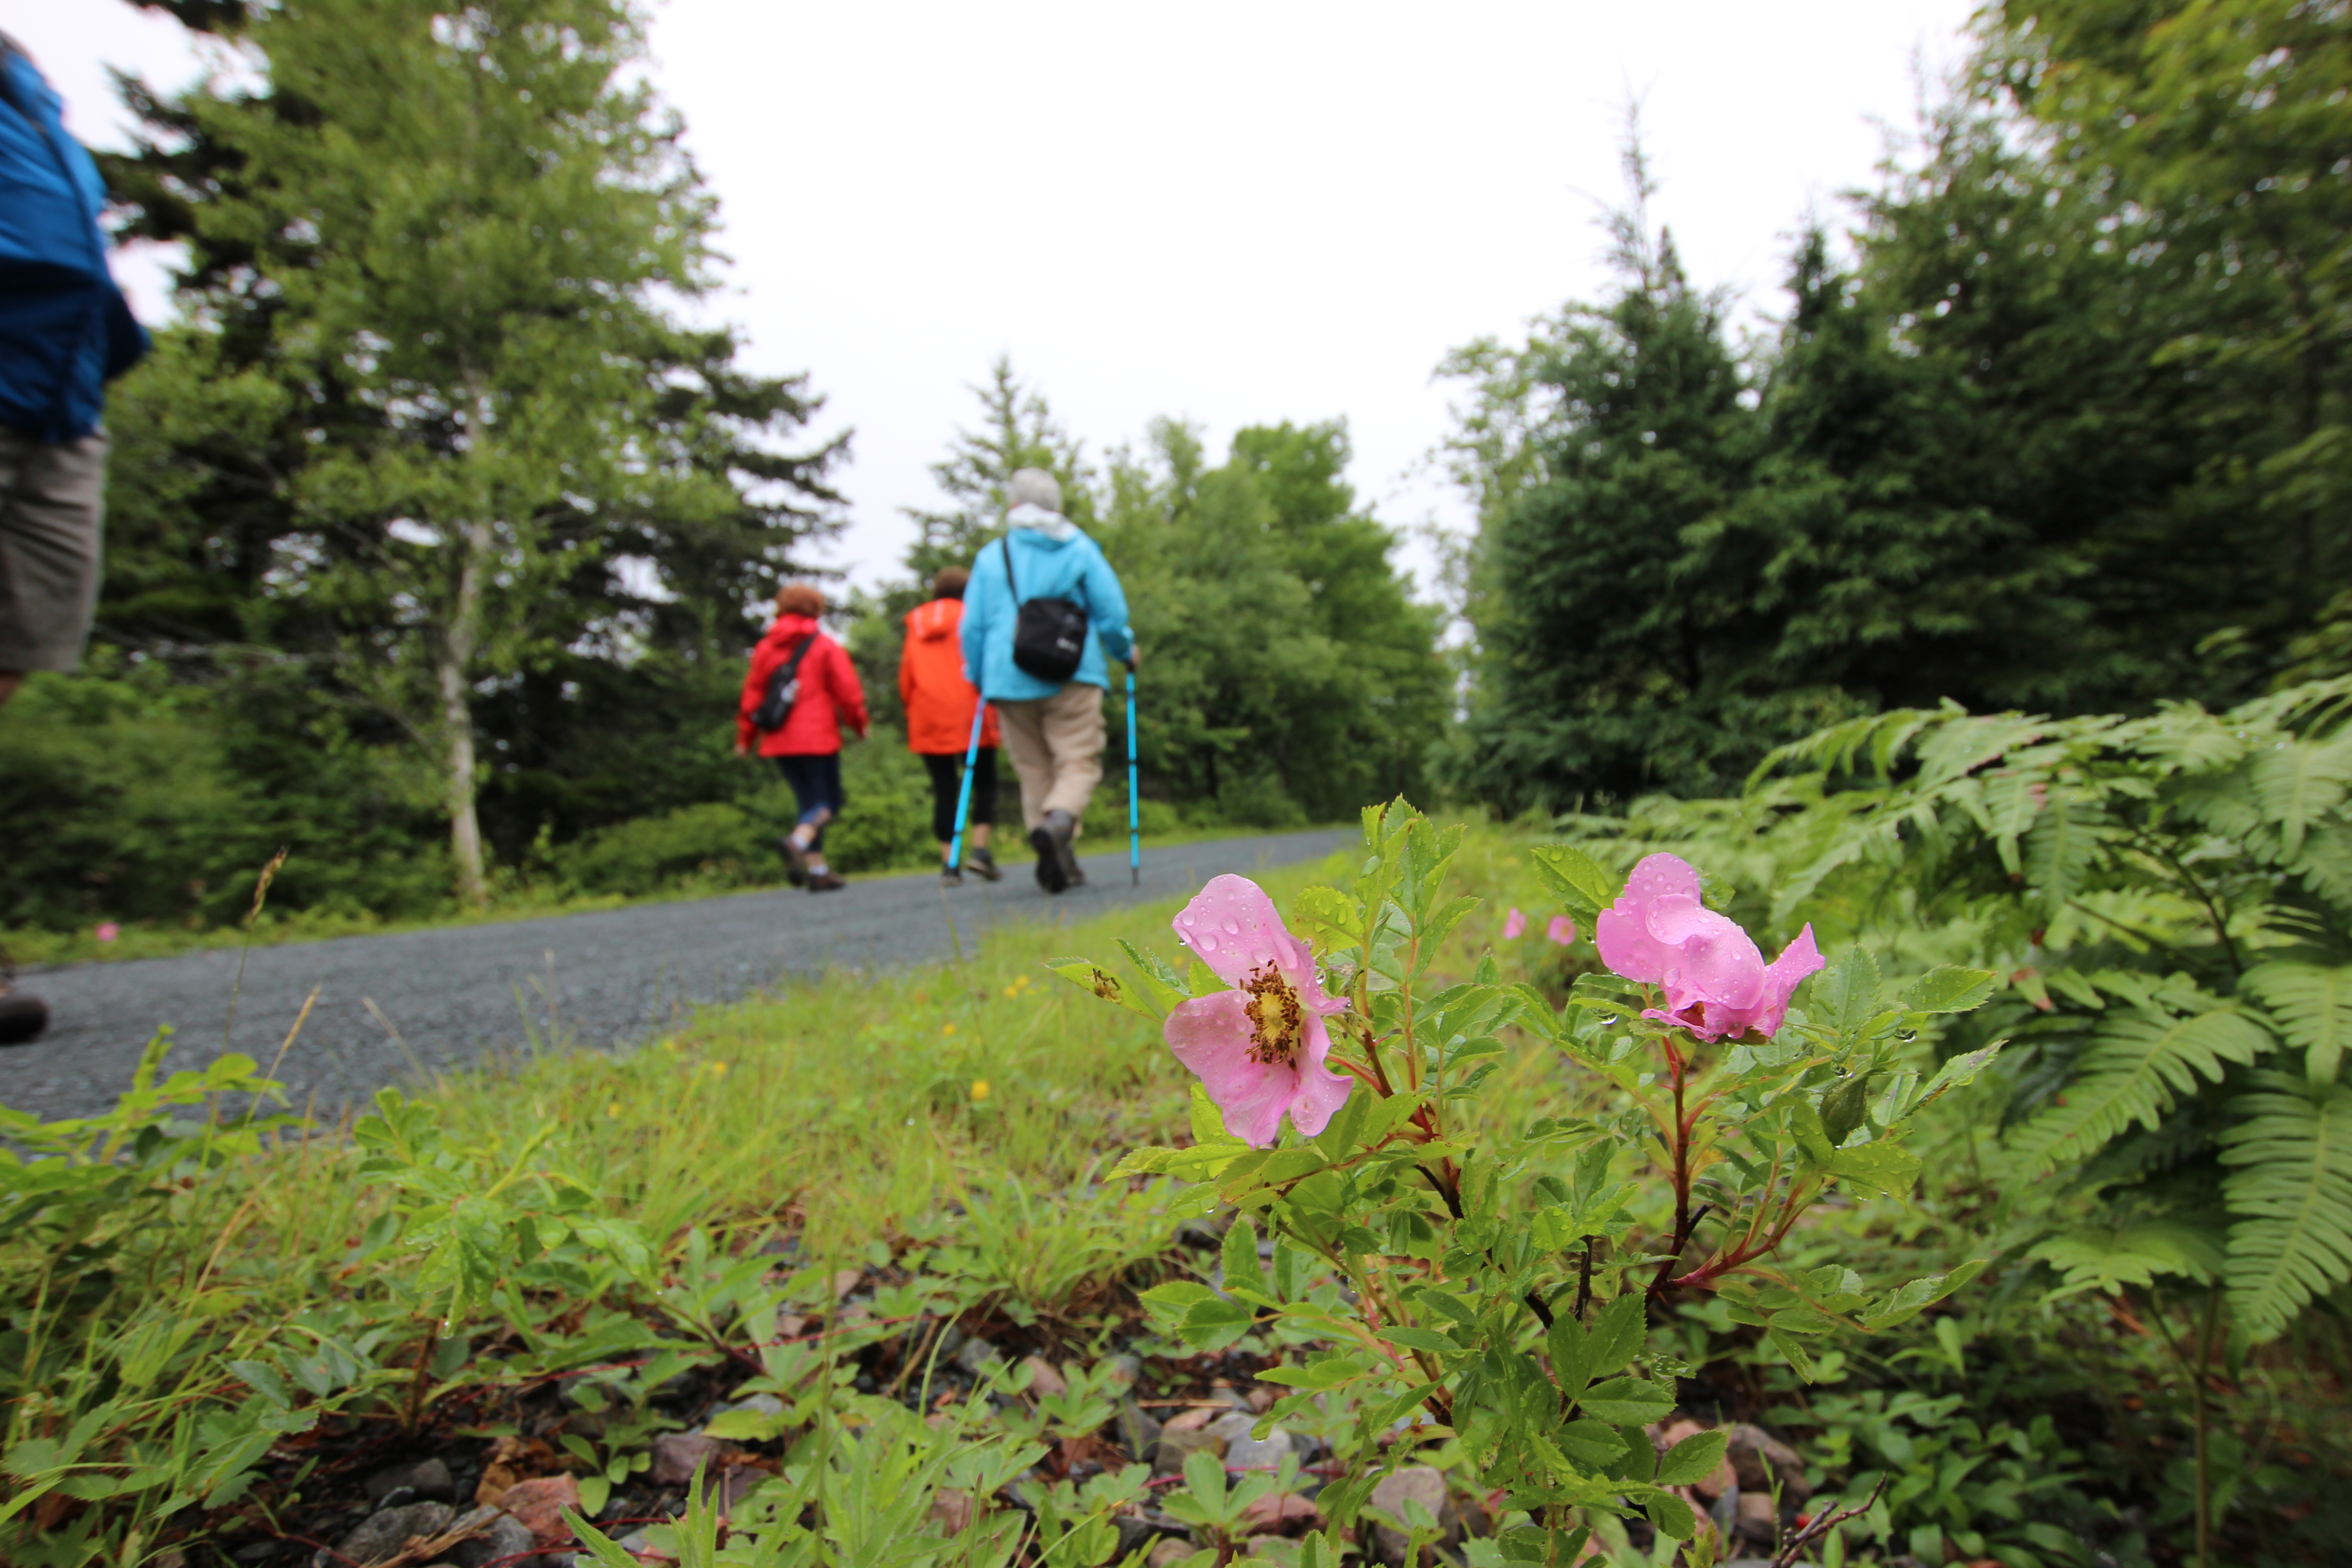 Three people walking on The Great Trail, with pink flowers in the foreground.